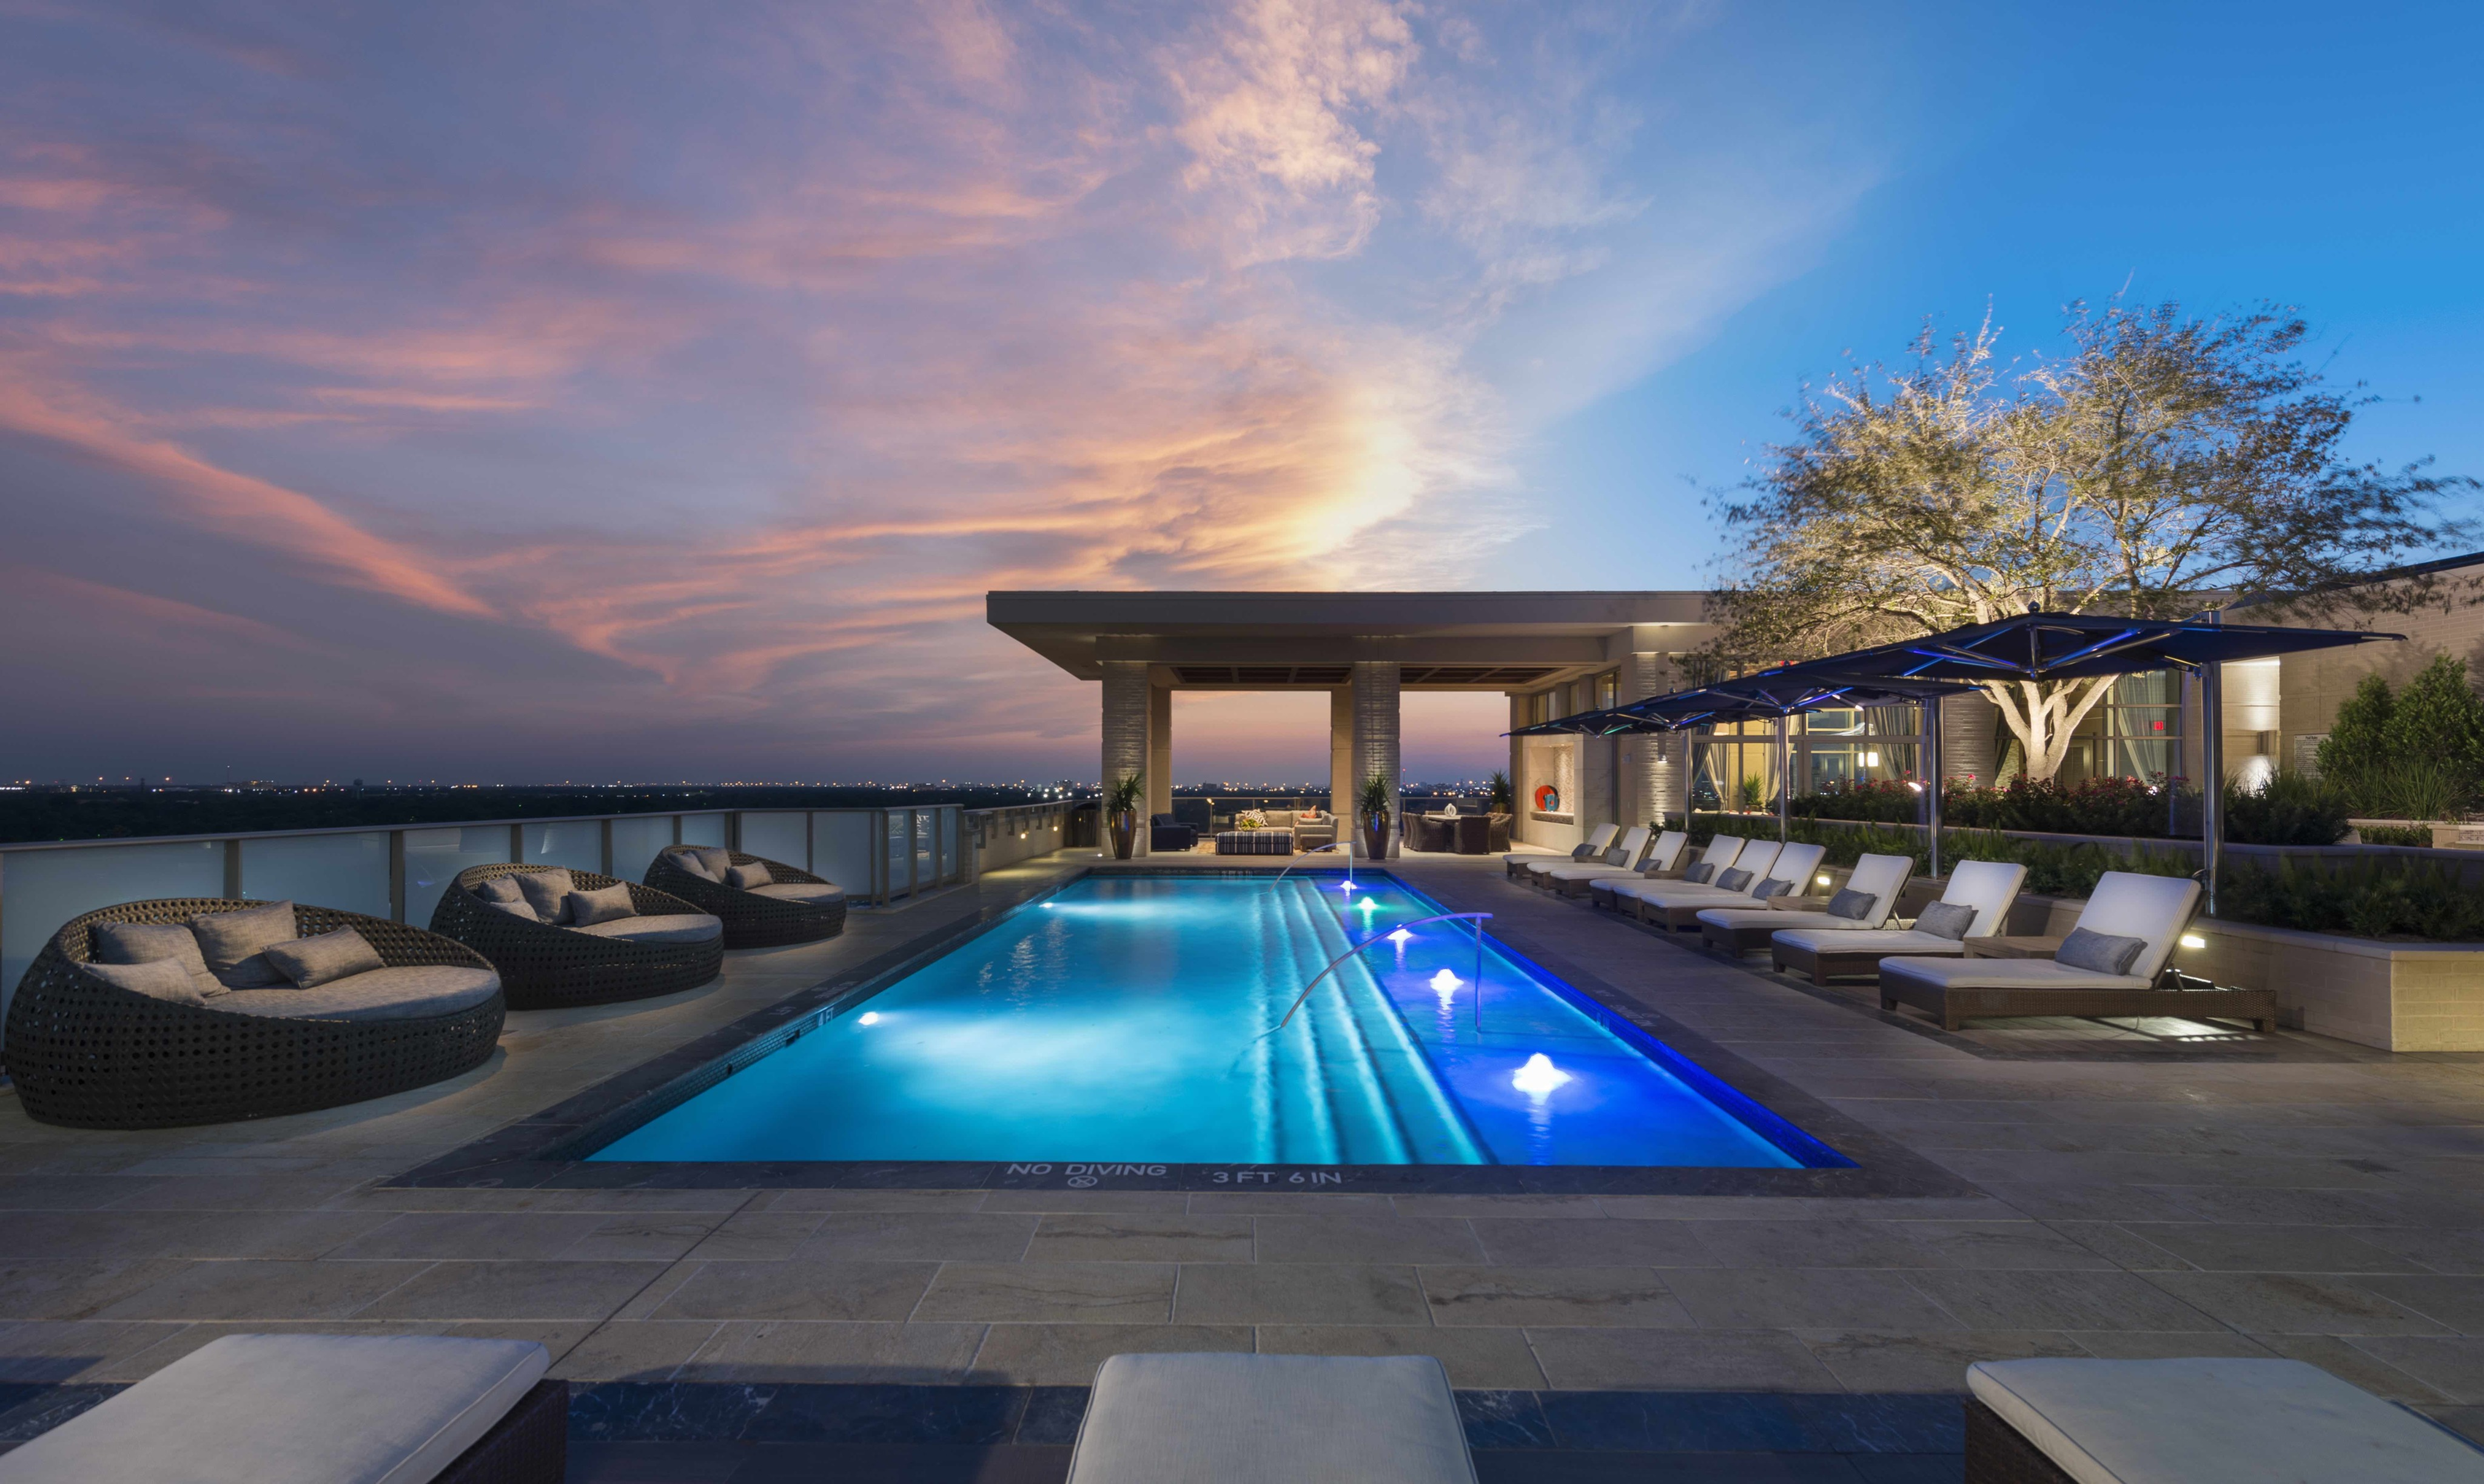 Rooftop pool with sunbeds and poolside cabanas at Hanover Southampton